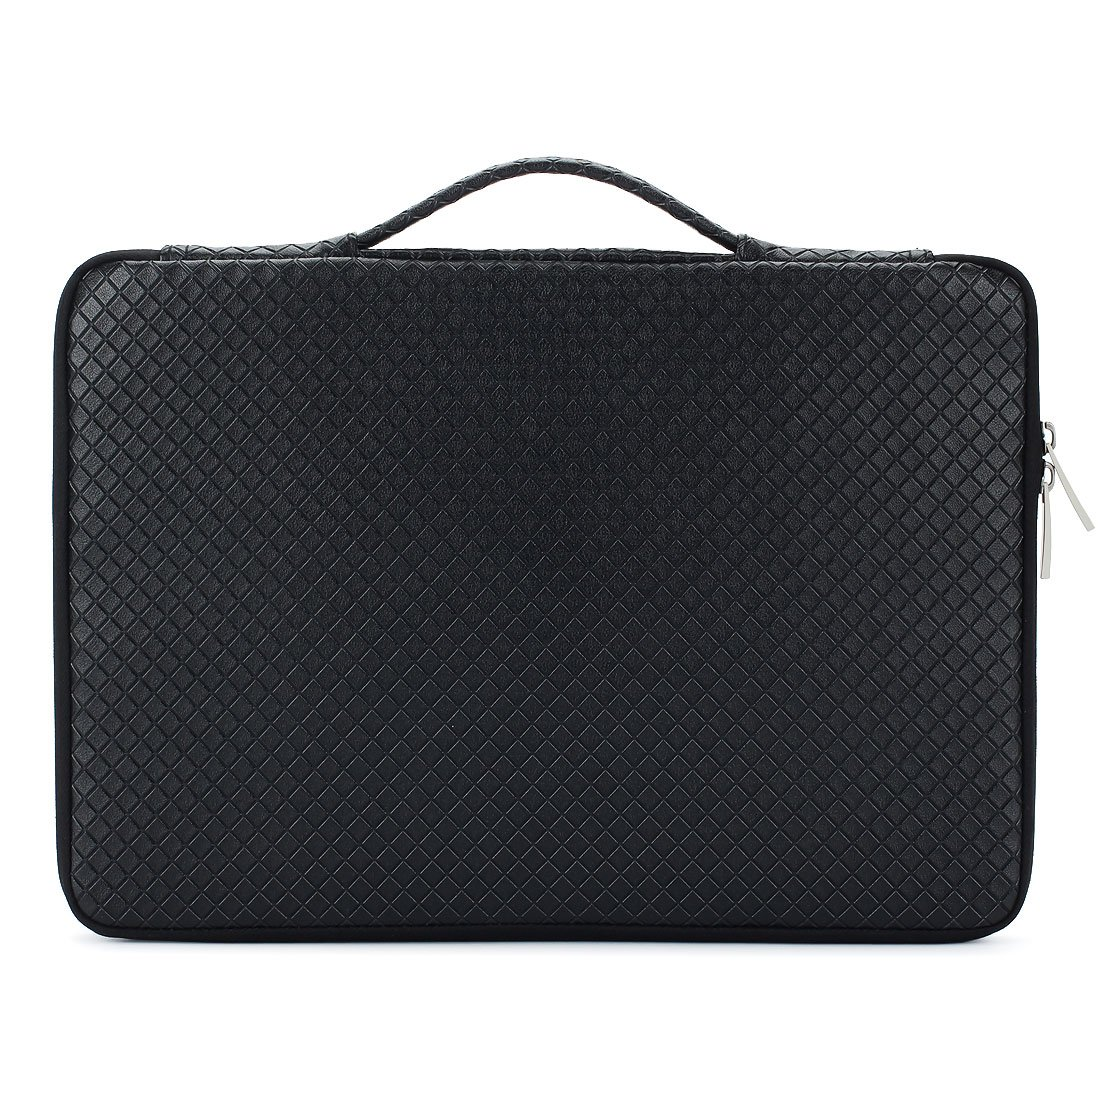 DOMISO 10.1 inch Waterproof Laptop Sleeve Leather Case Portable Carrying Bag for 10.1-10.5 inch Laptops/eBooks / Kids Tablet/iPad Pro/iPad Air/Lenovo ...